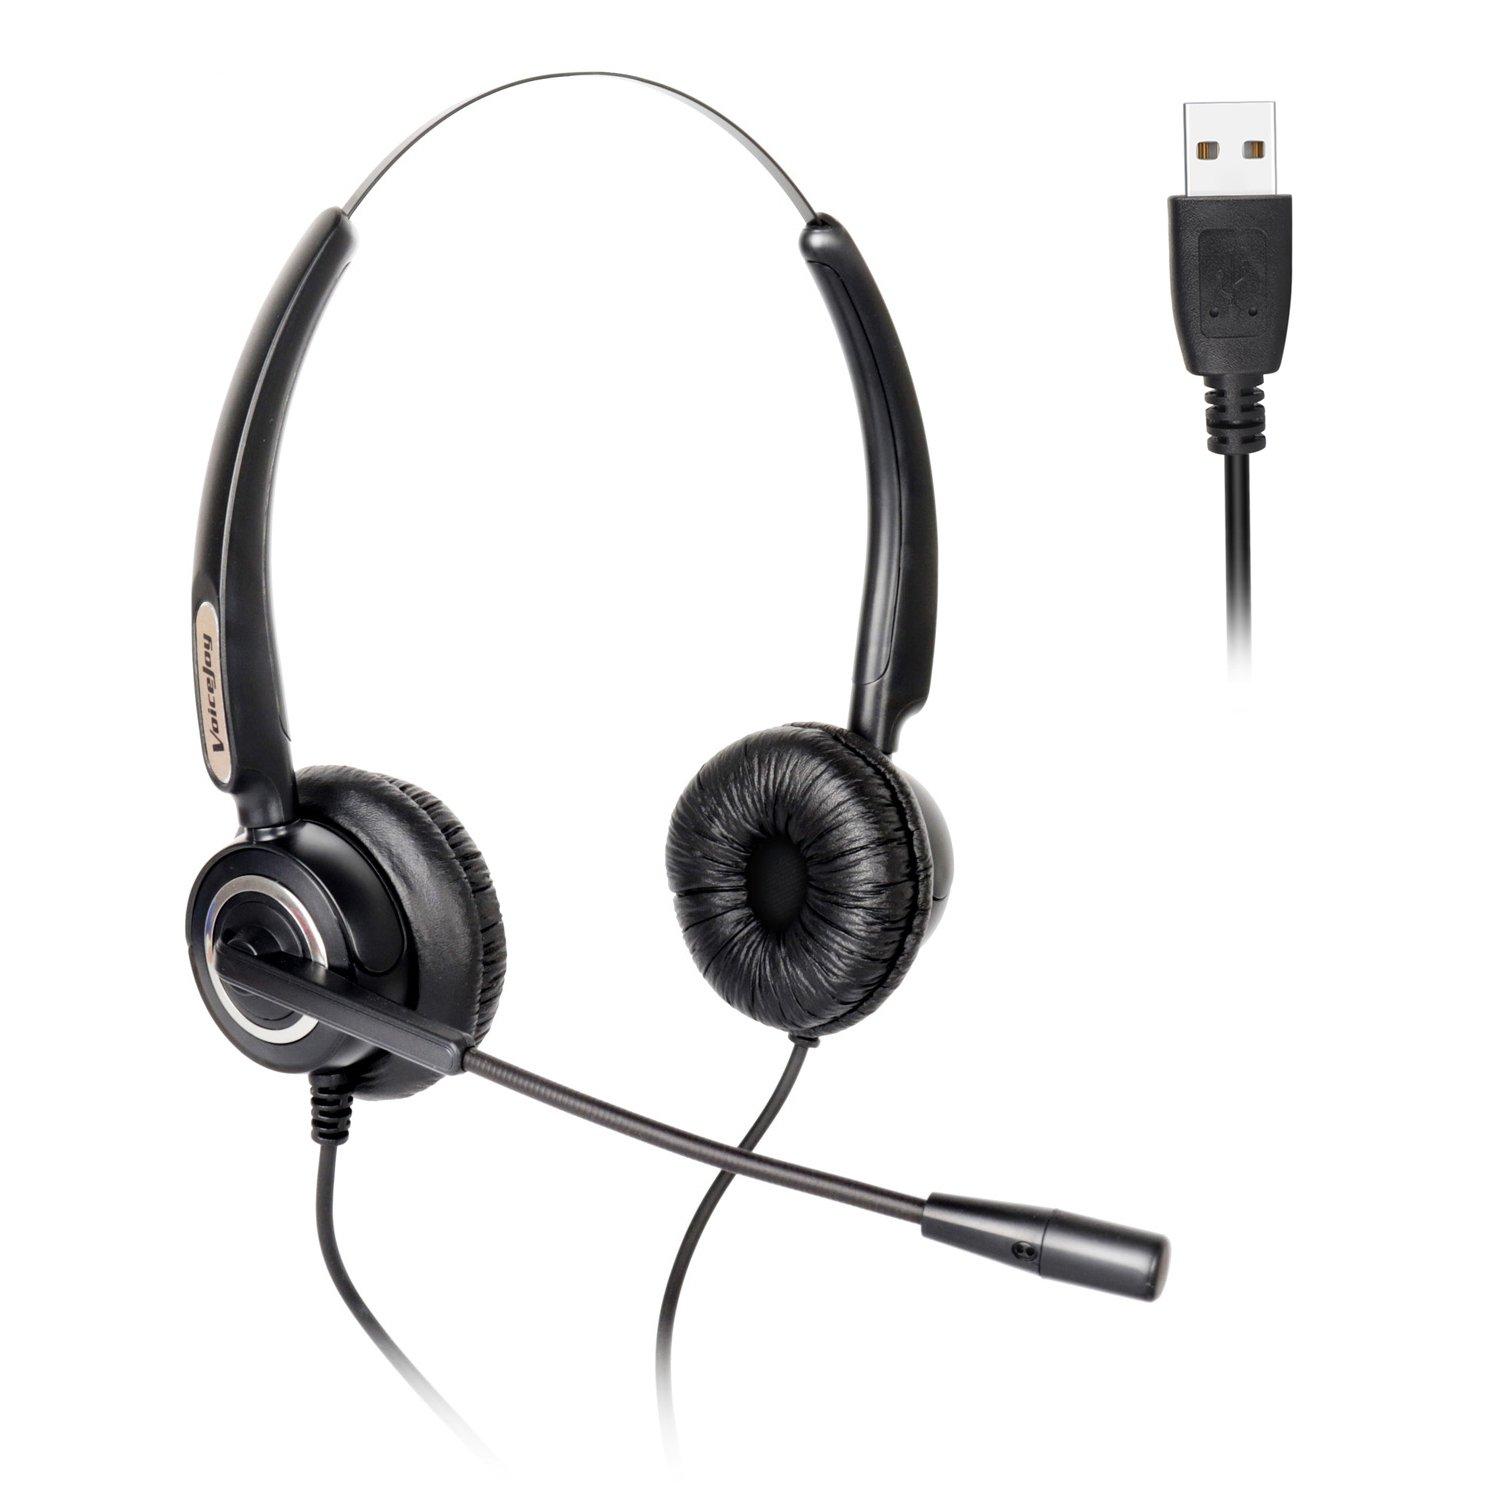 Binaural USB Headset with Microphone Noise Cancelling and Volume Adjuster for Computer, Skype,Laptop